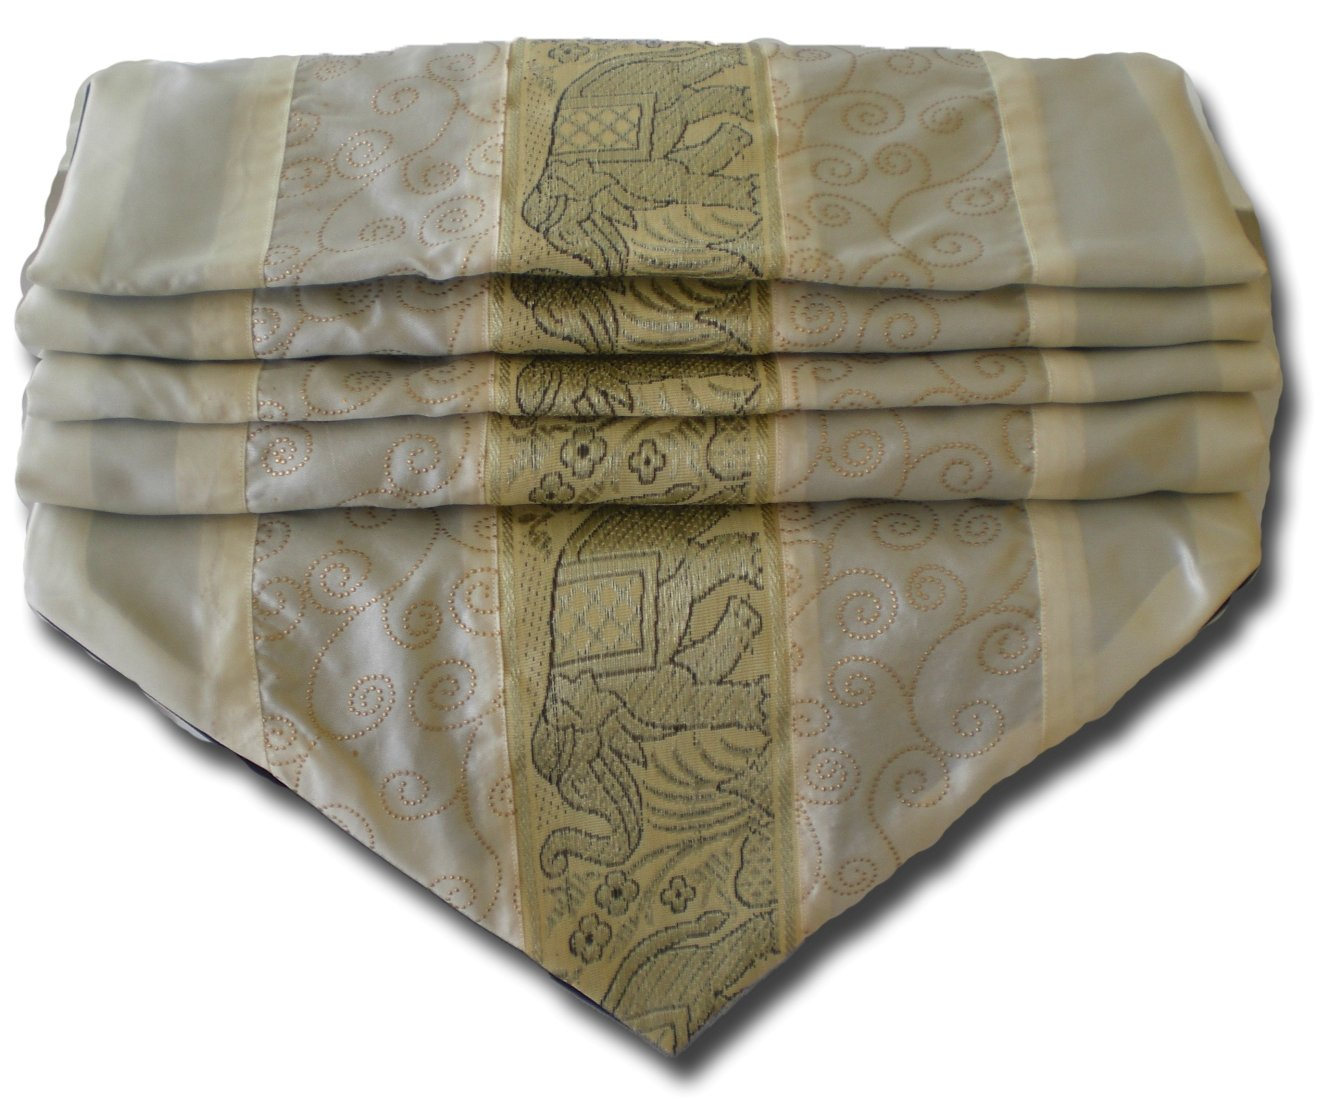 soljo - tablecloth tablerunner table runner linen Thai Silk Elegant precious Elephant 150/200/250 cm x 30 cm many colors (creme, 200 cm x 30 cm) by by soljo